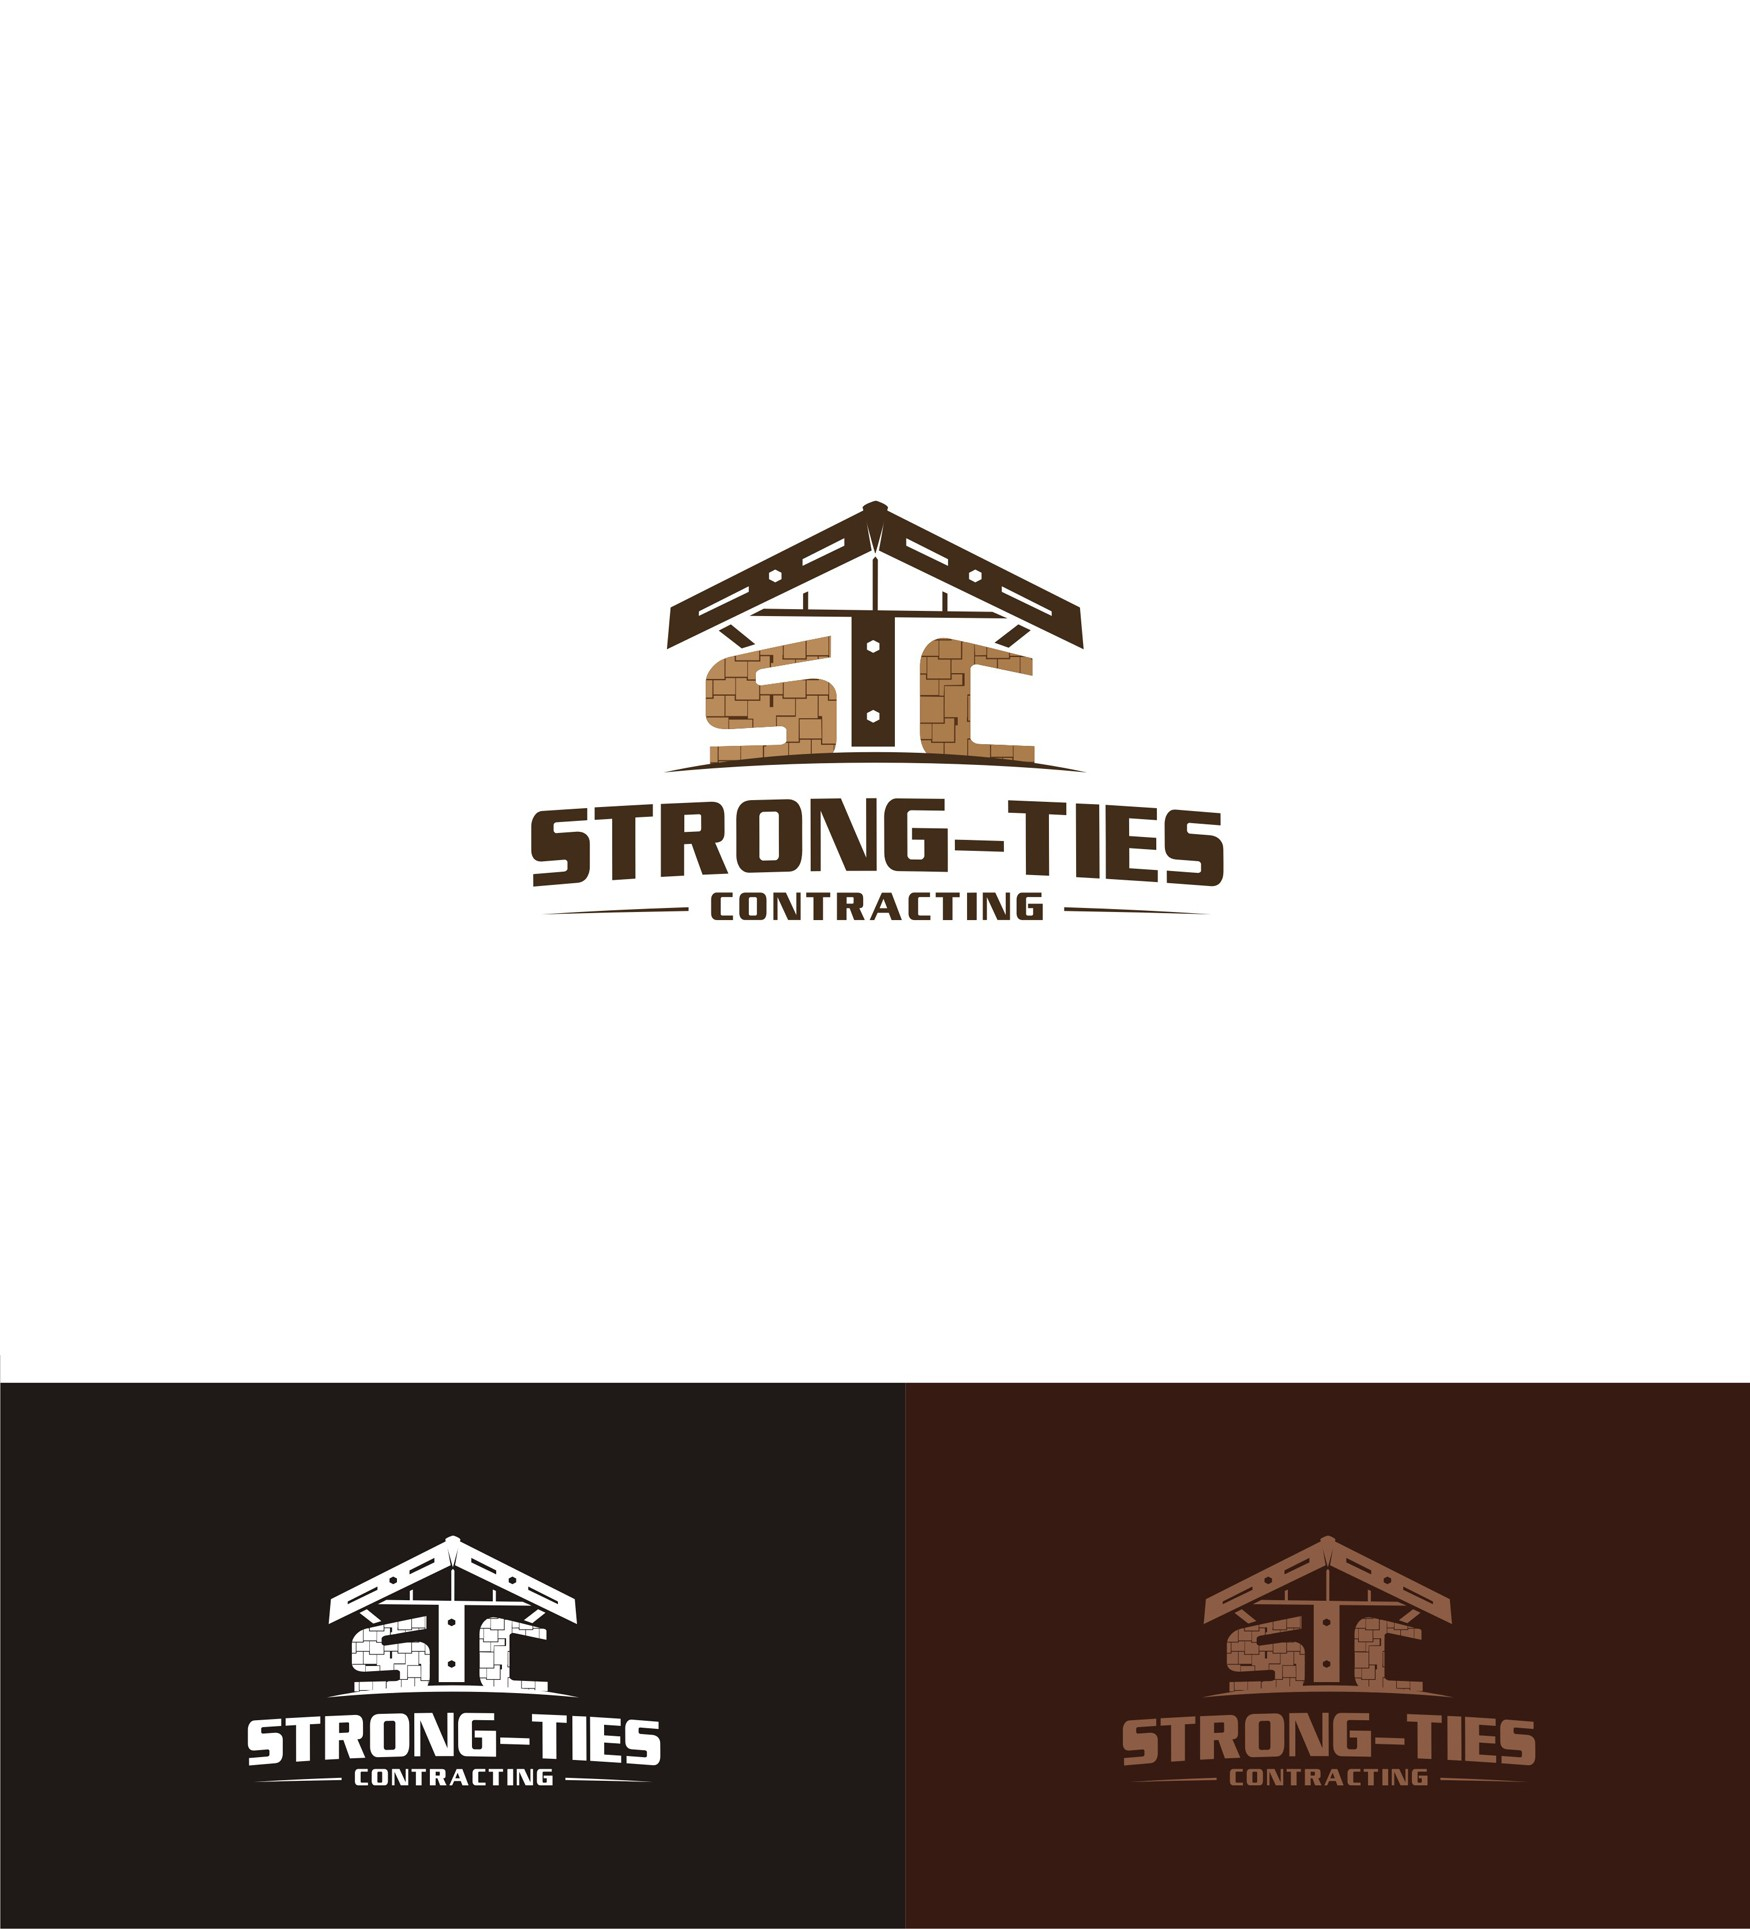 Create a unique logo and website for a small contracting company